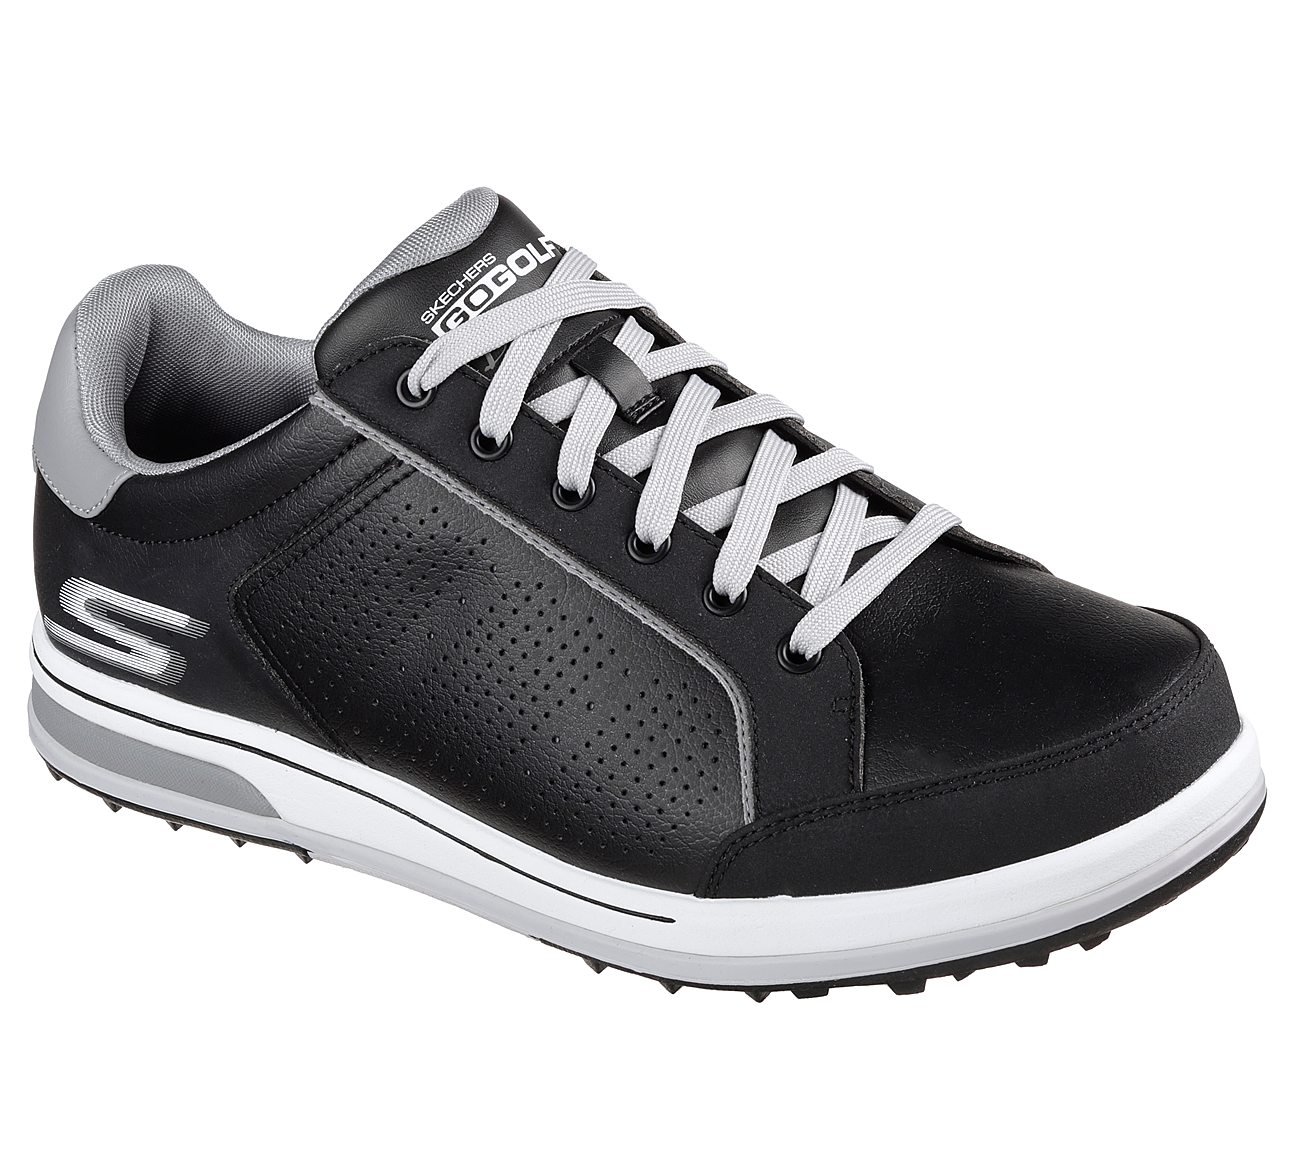 Skechers Go Golf Drive 2 Golf Shoe - Black/White